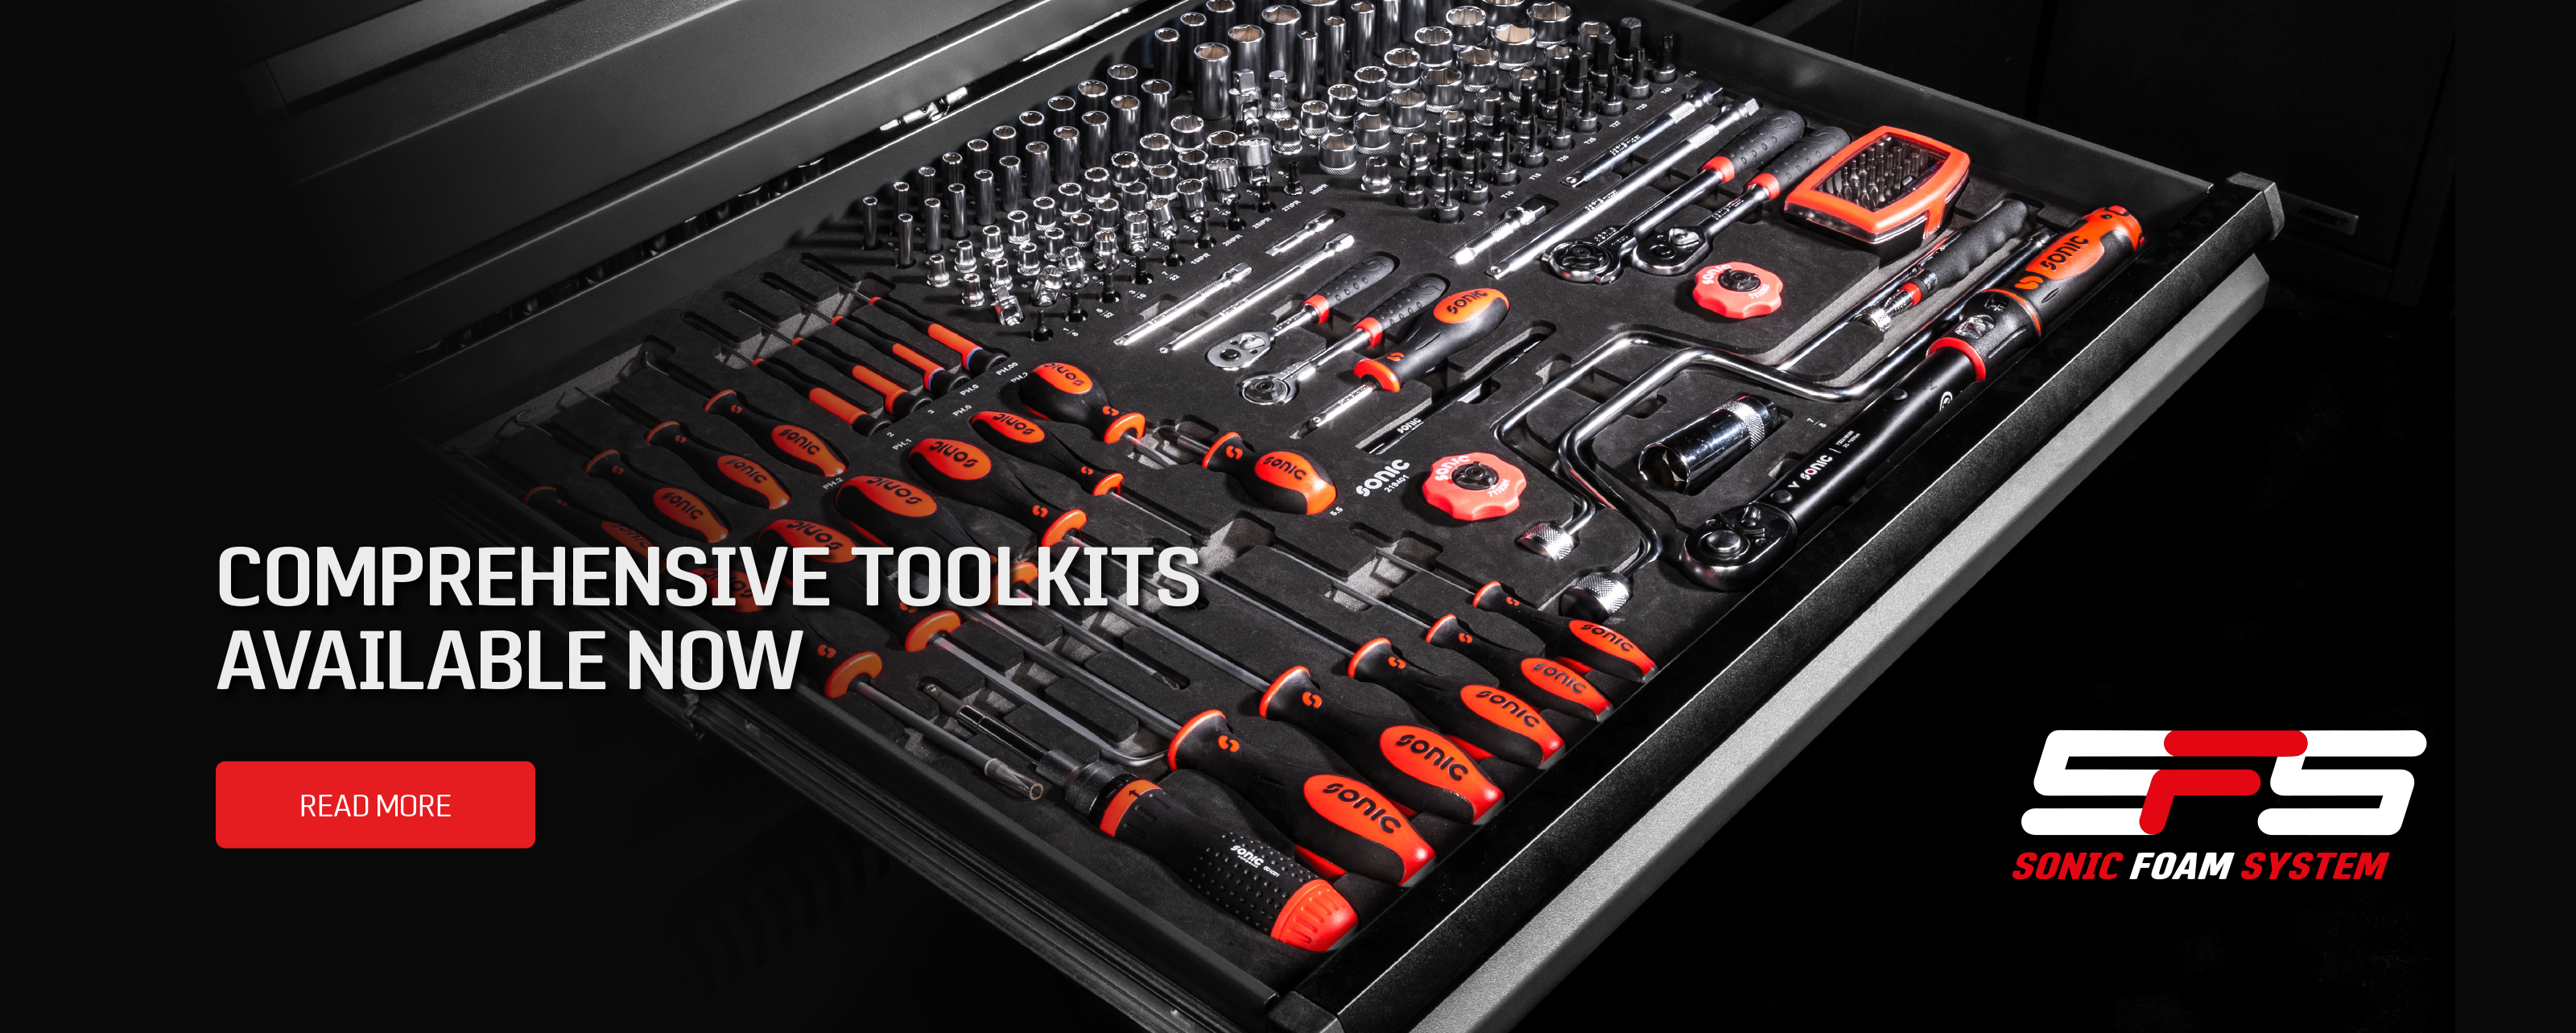 Sonic toolkits available now without the toolbox. Get up to 644 tools all in the Sonic Foam System